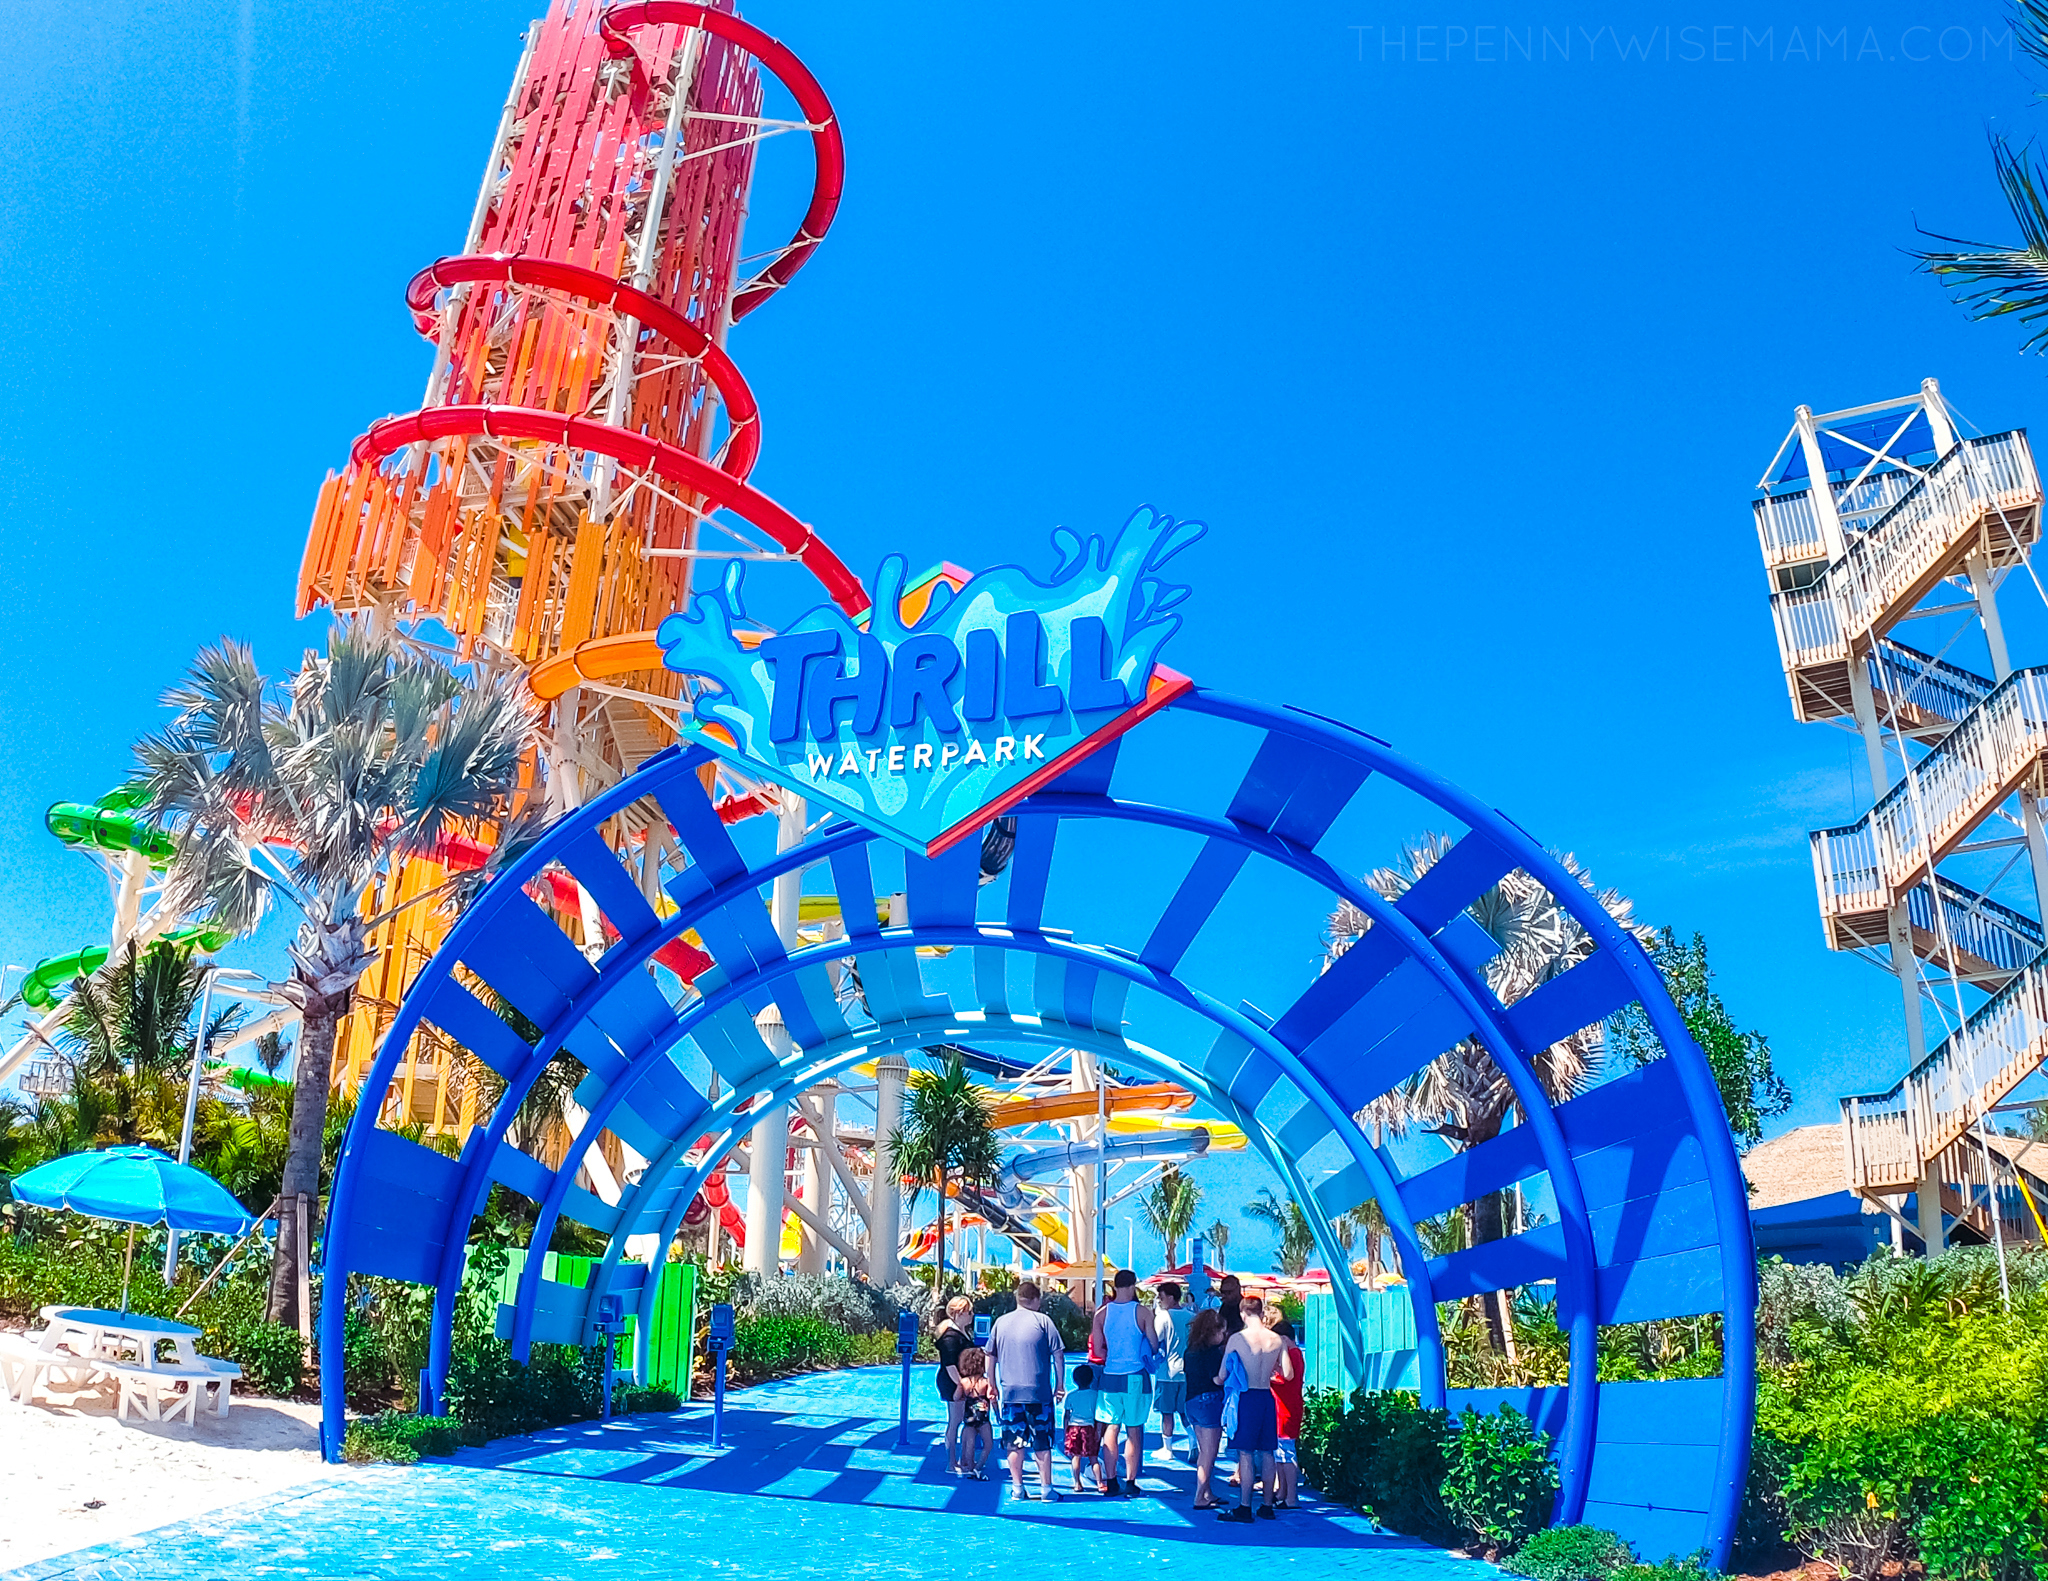 Entrance to Thrill Waterpark at Perfect Day at CocoCay